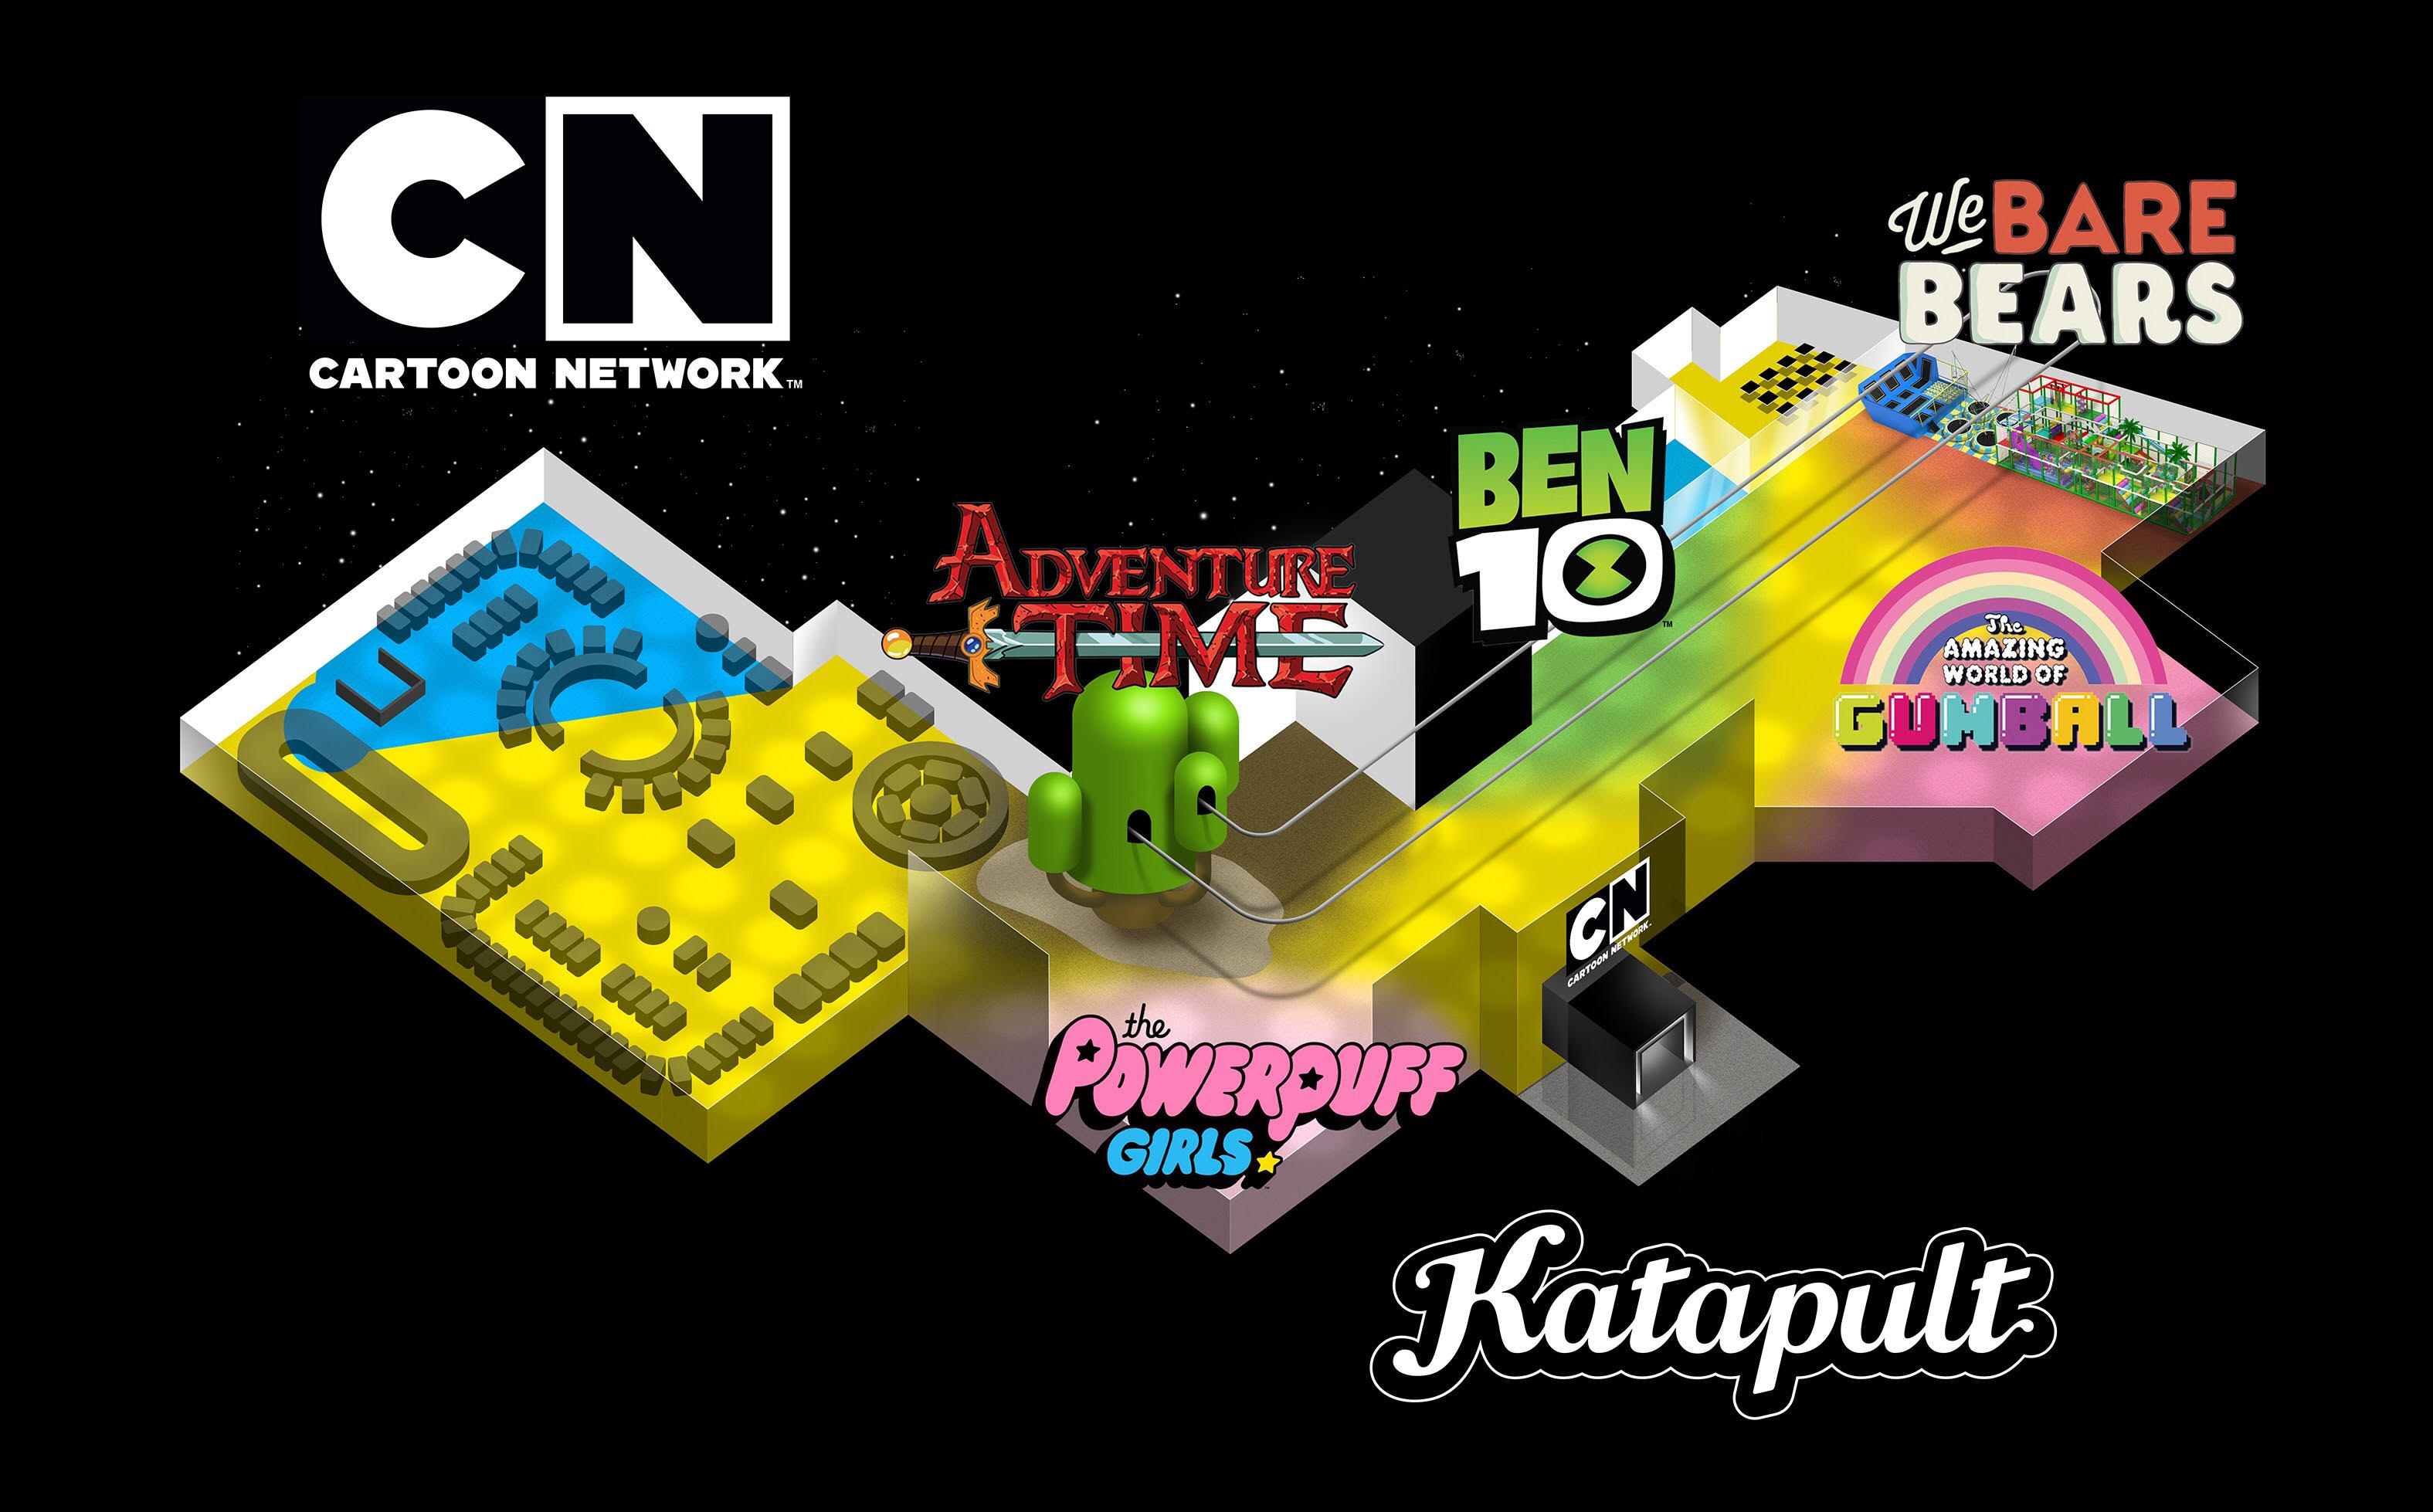 Katapult Cartoon Network Themed Attraction Kuwait